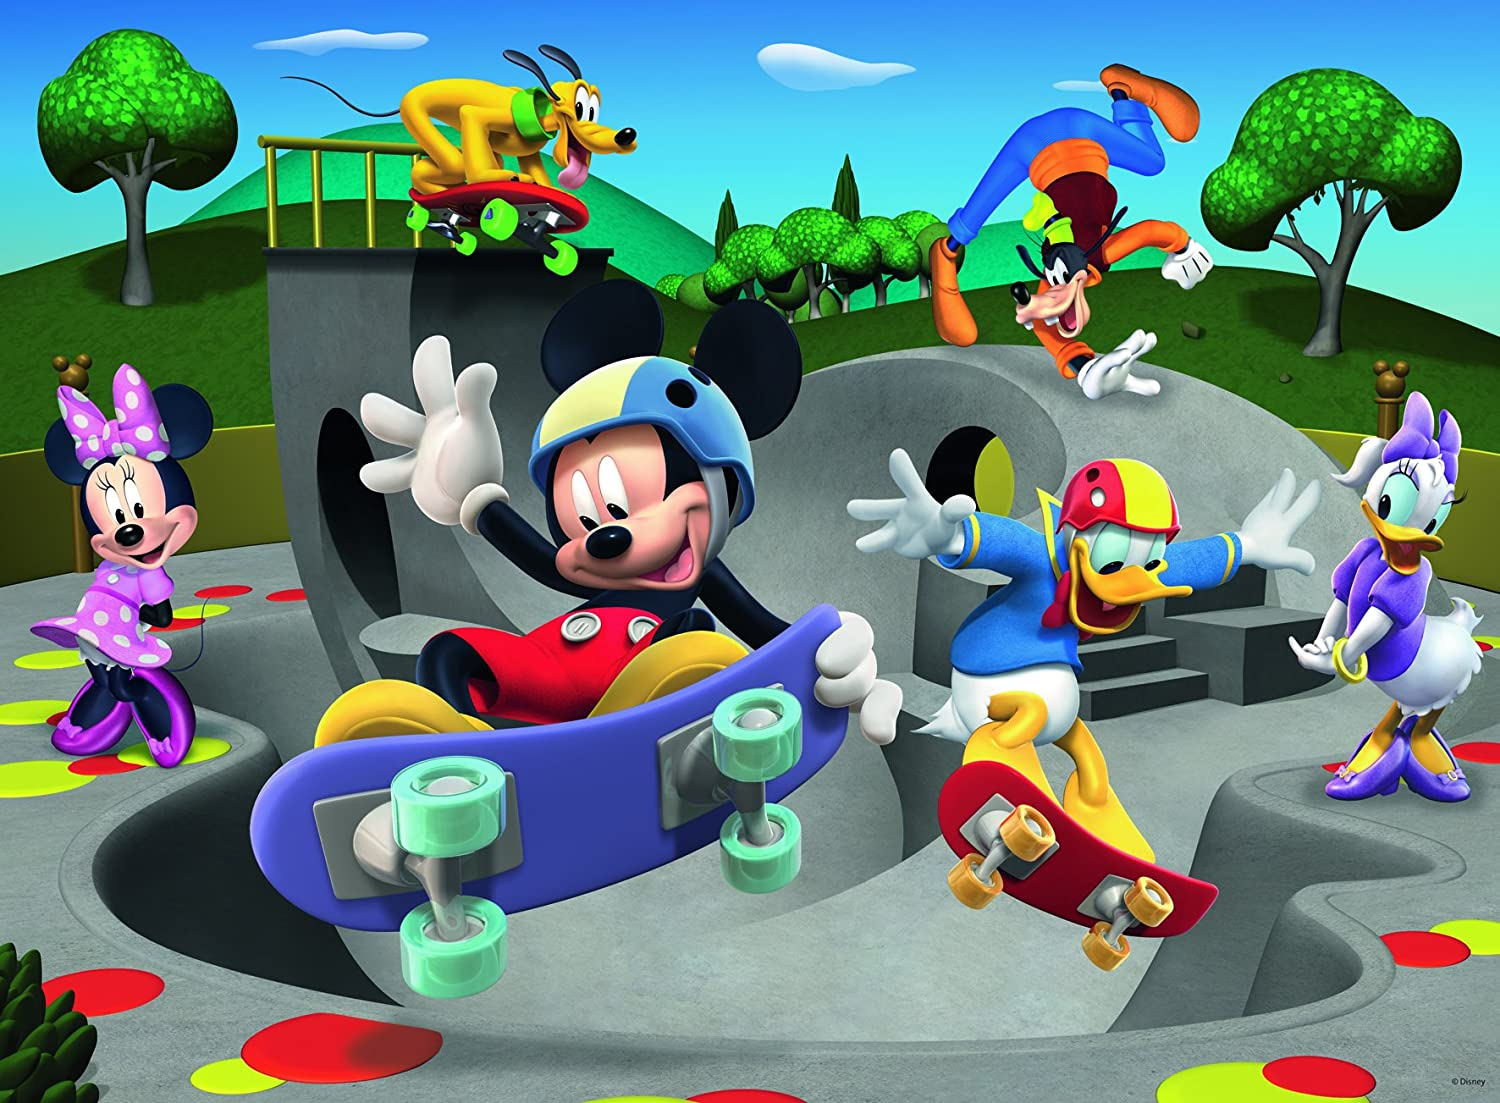 Ravensburger Mickey & Minnie: At The Skate Park 100 Piece Jigsaw Puzzle for Kids – Every Piece is Unique, Pieces Fit Together Perfectly